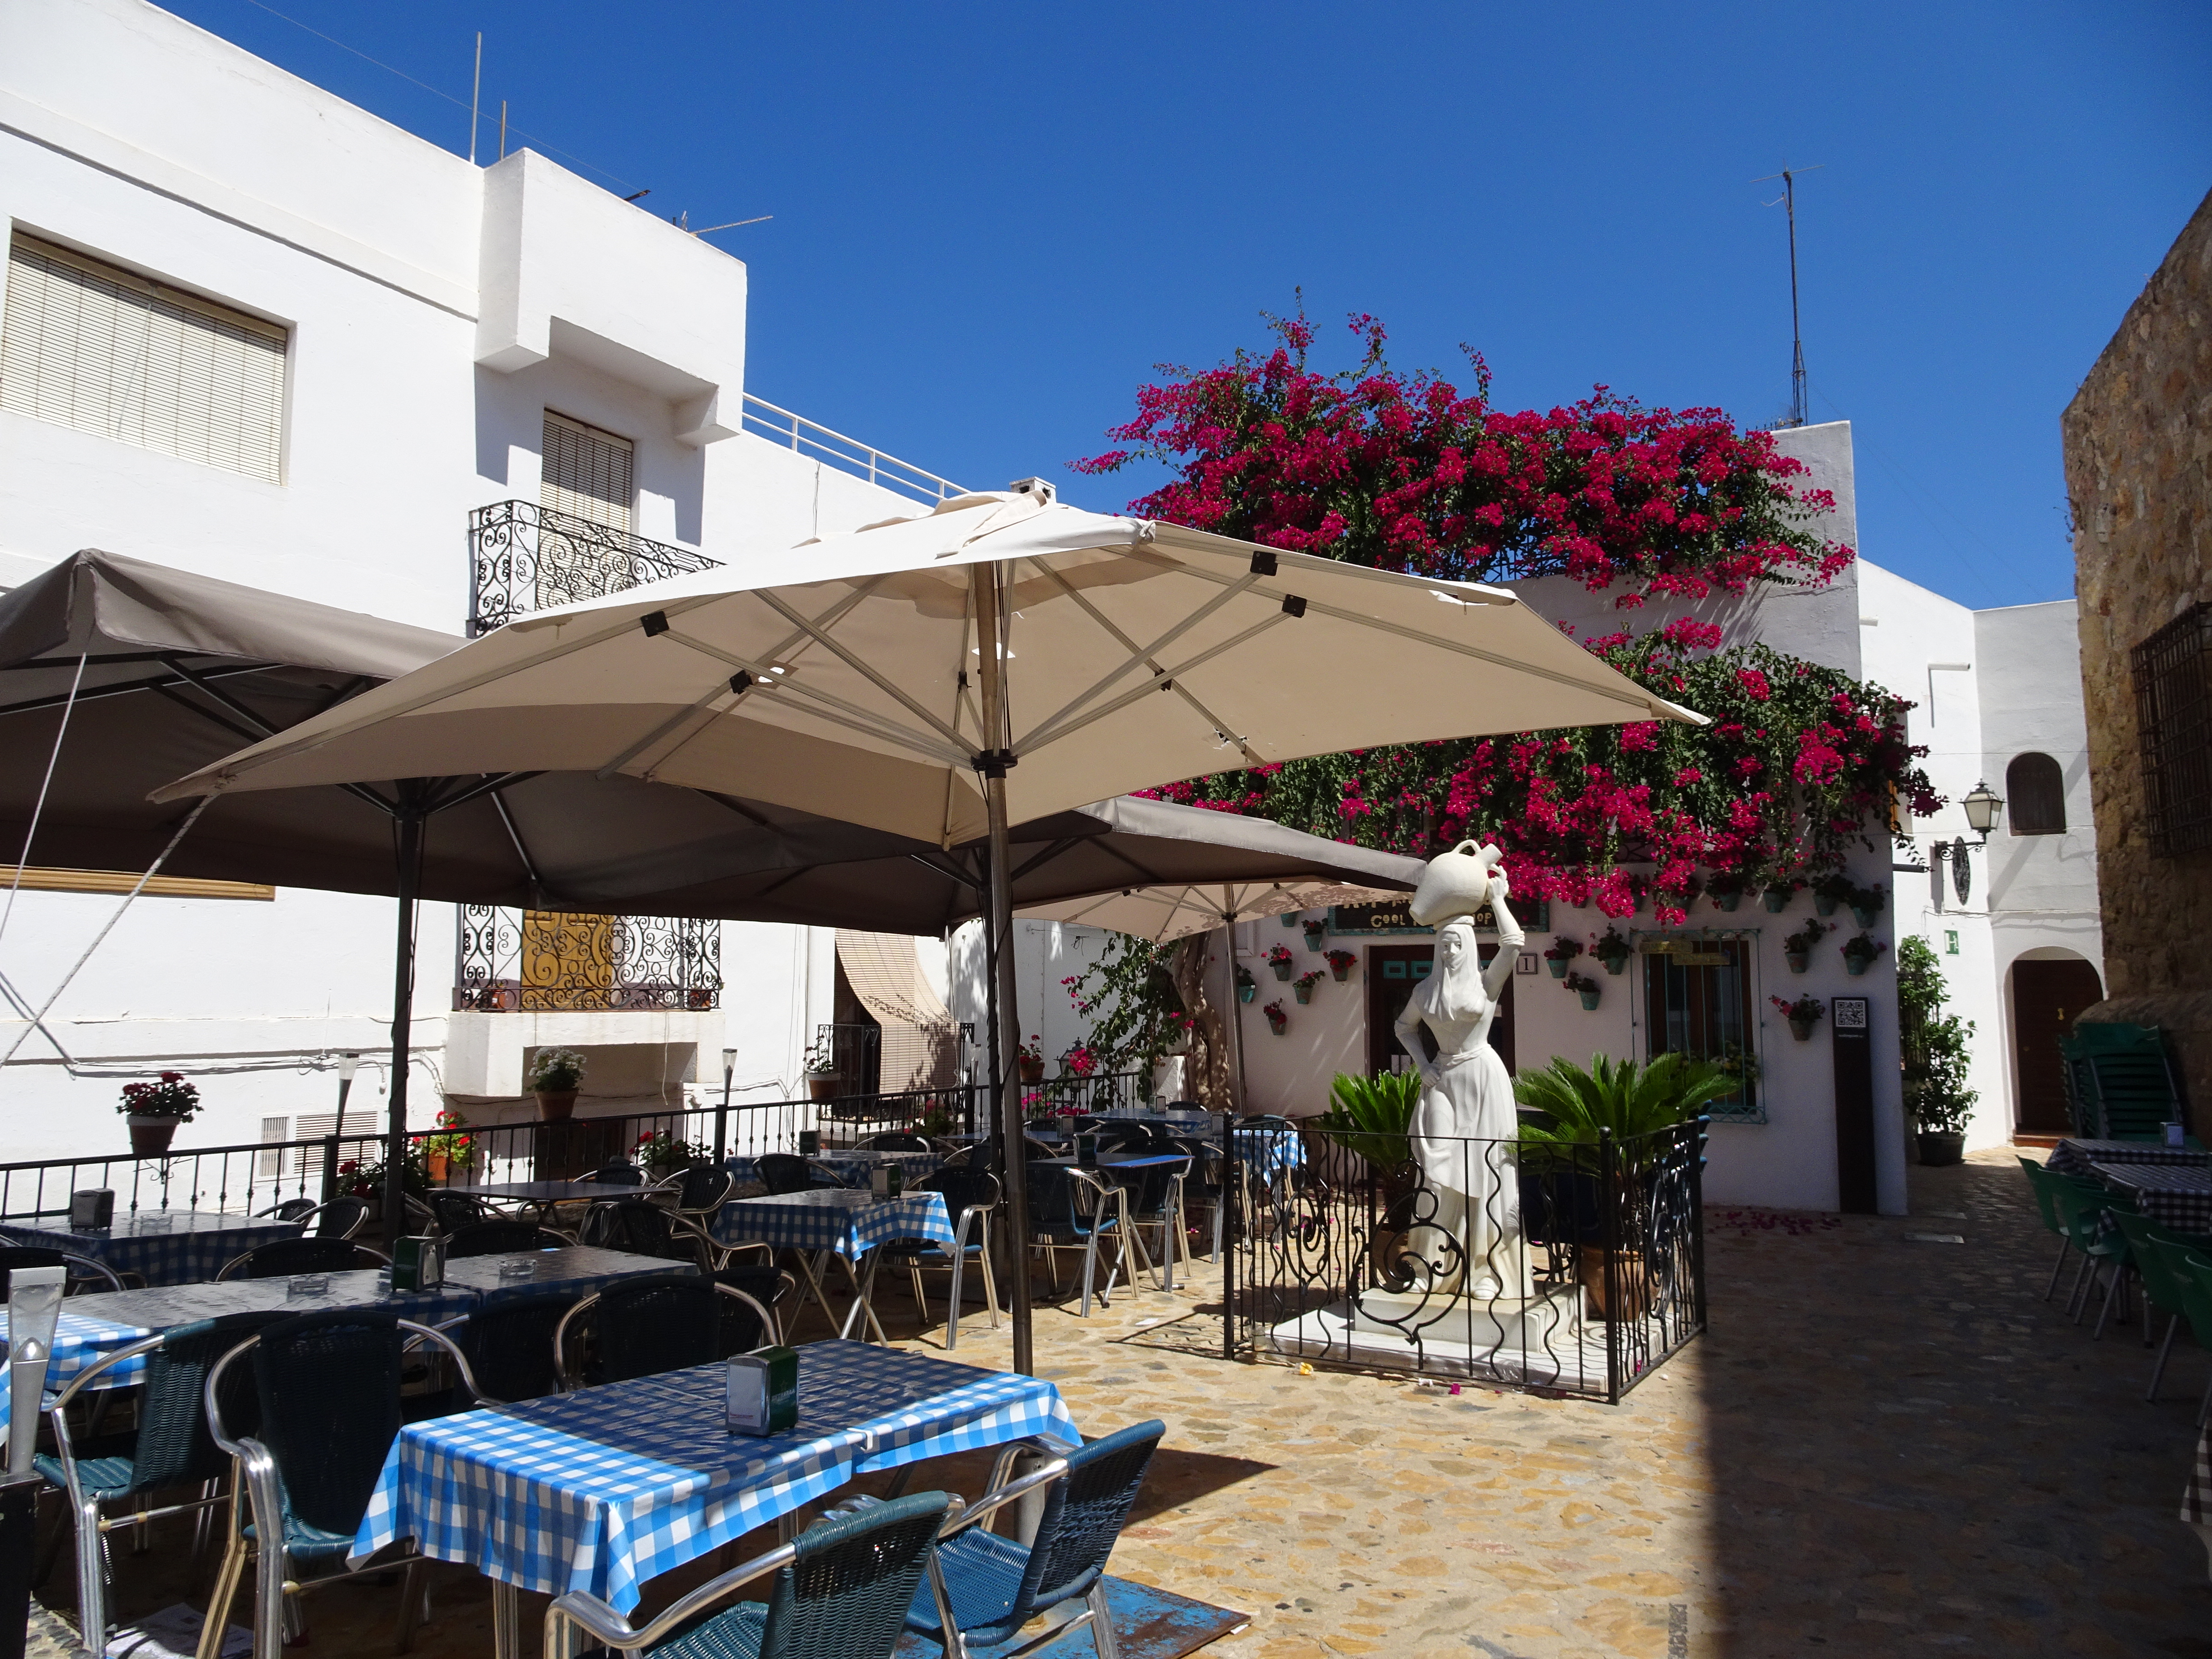 Lovely shady plazas in Mojacar old town